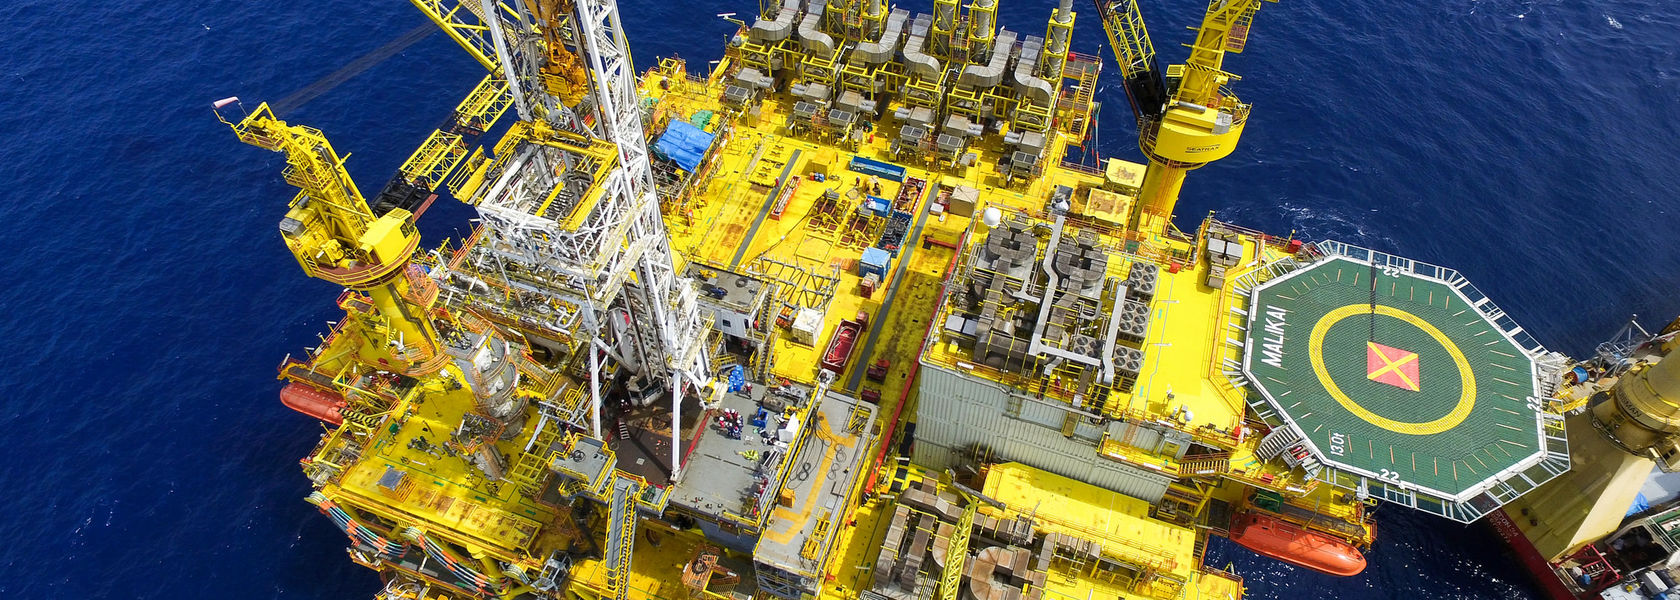 Shell reports strong oil and gas output for 2018